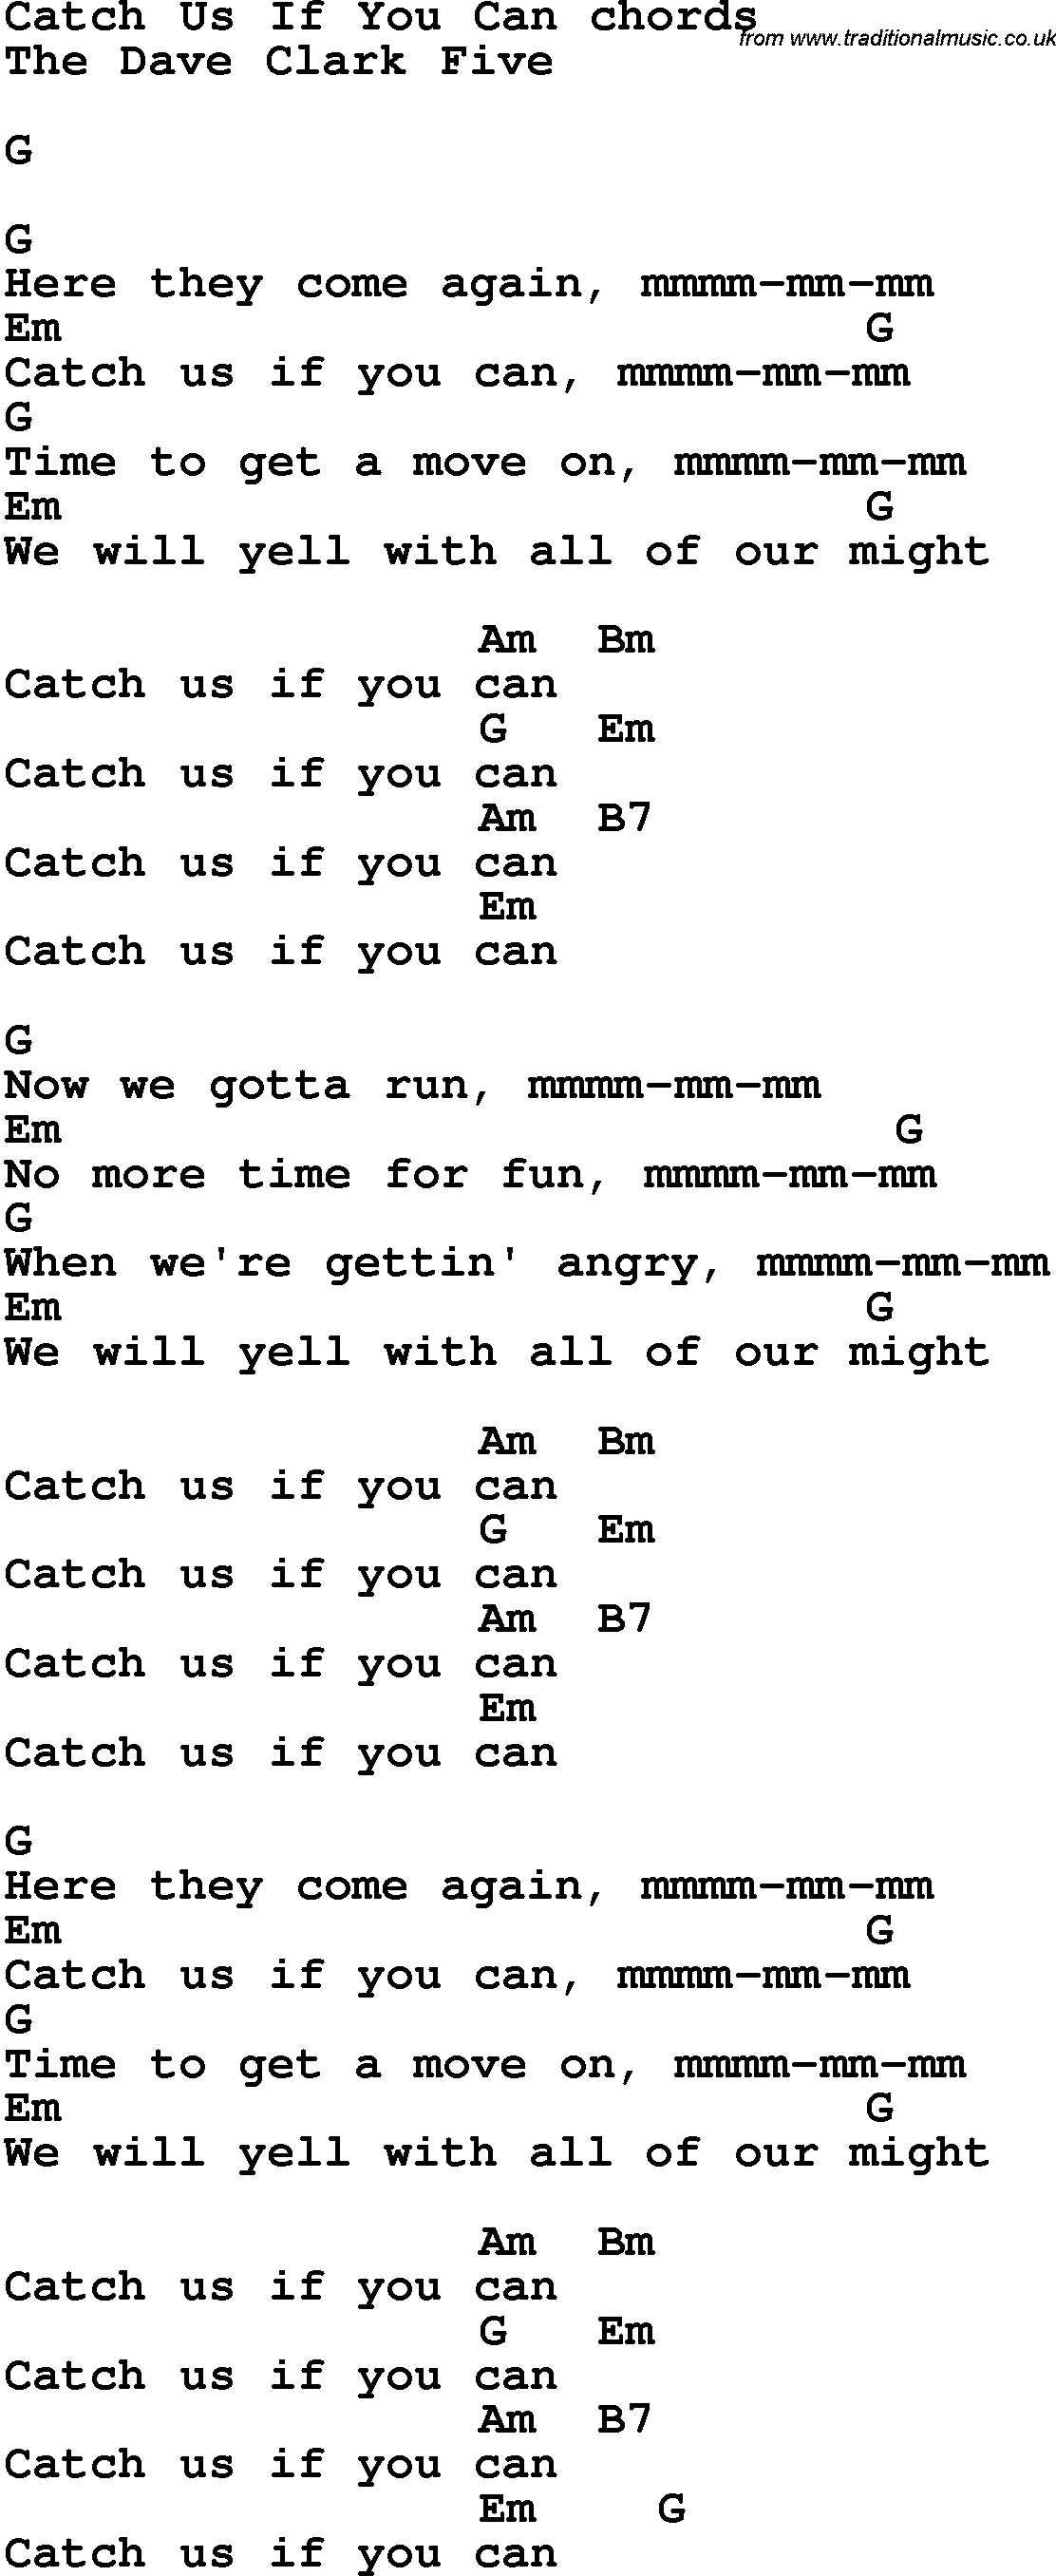 Song Lyrics With Guitar Chords For Catch Us If You Can